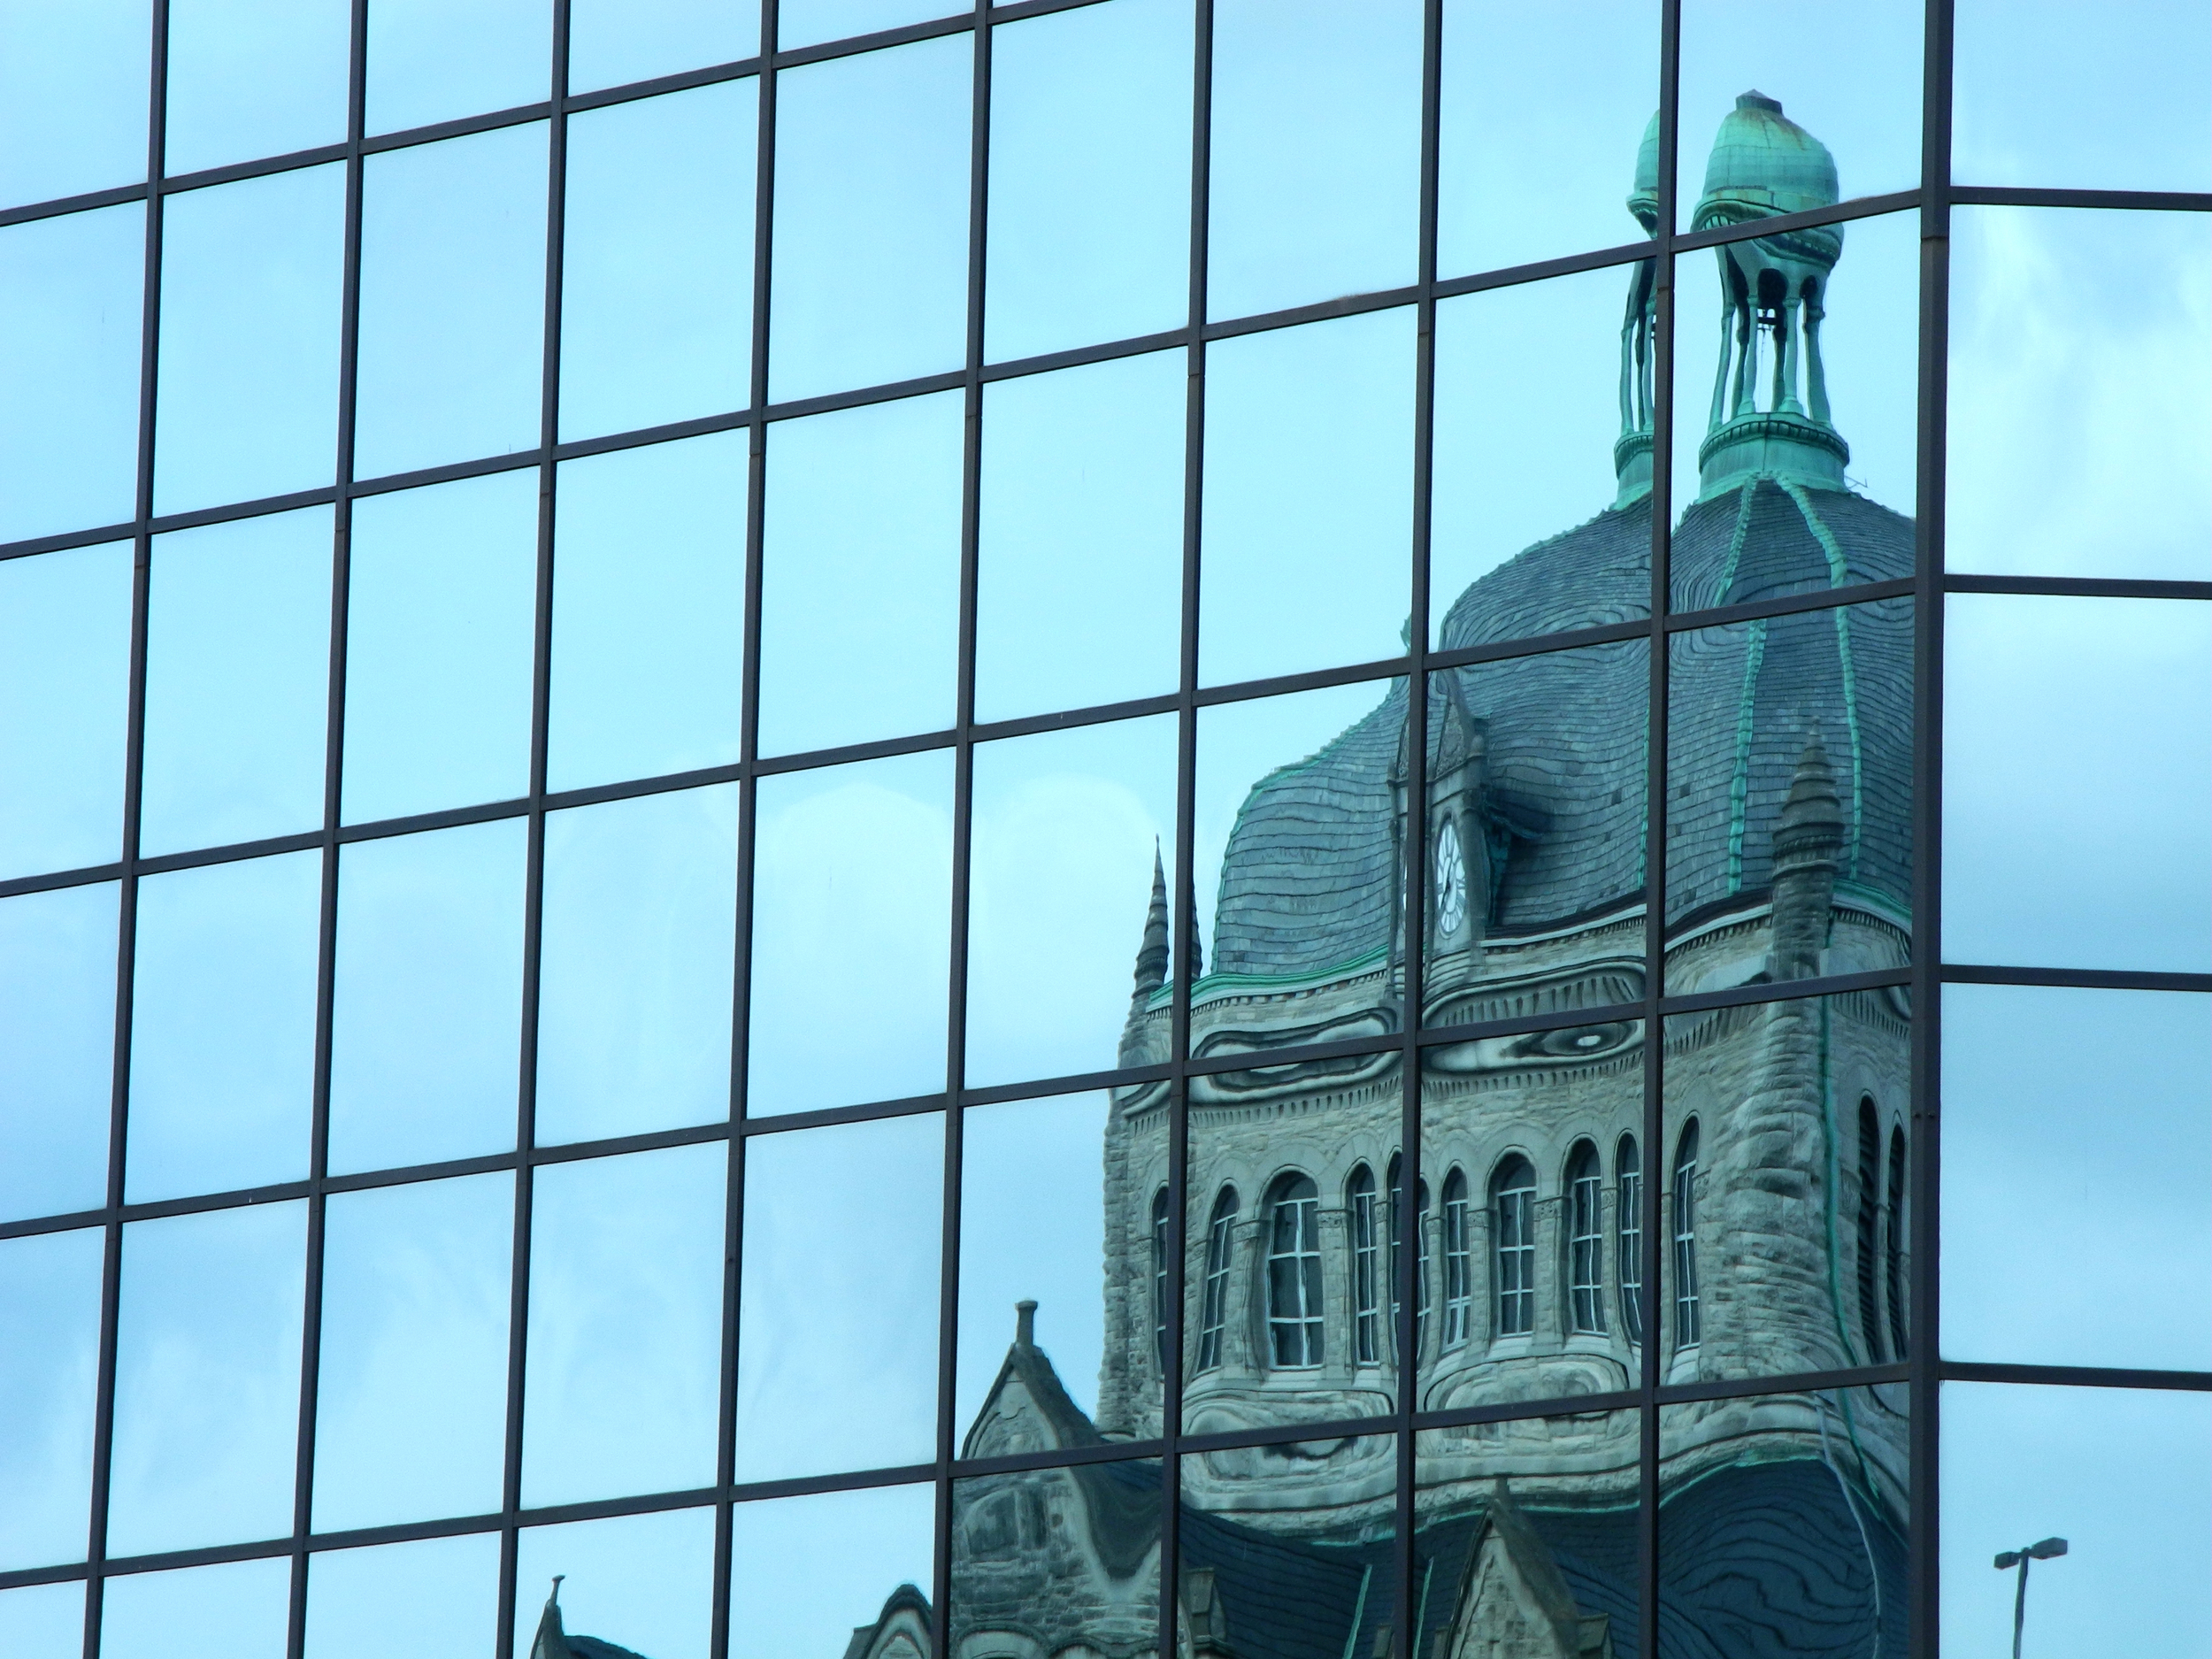 CourthouseReflection_LM.jpg